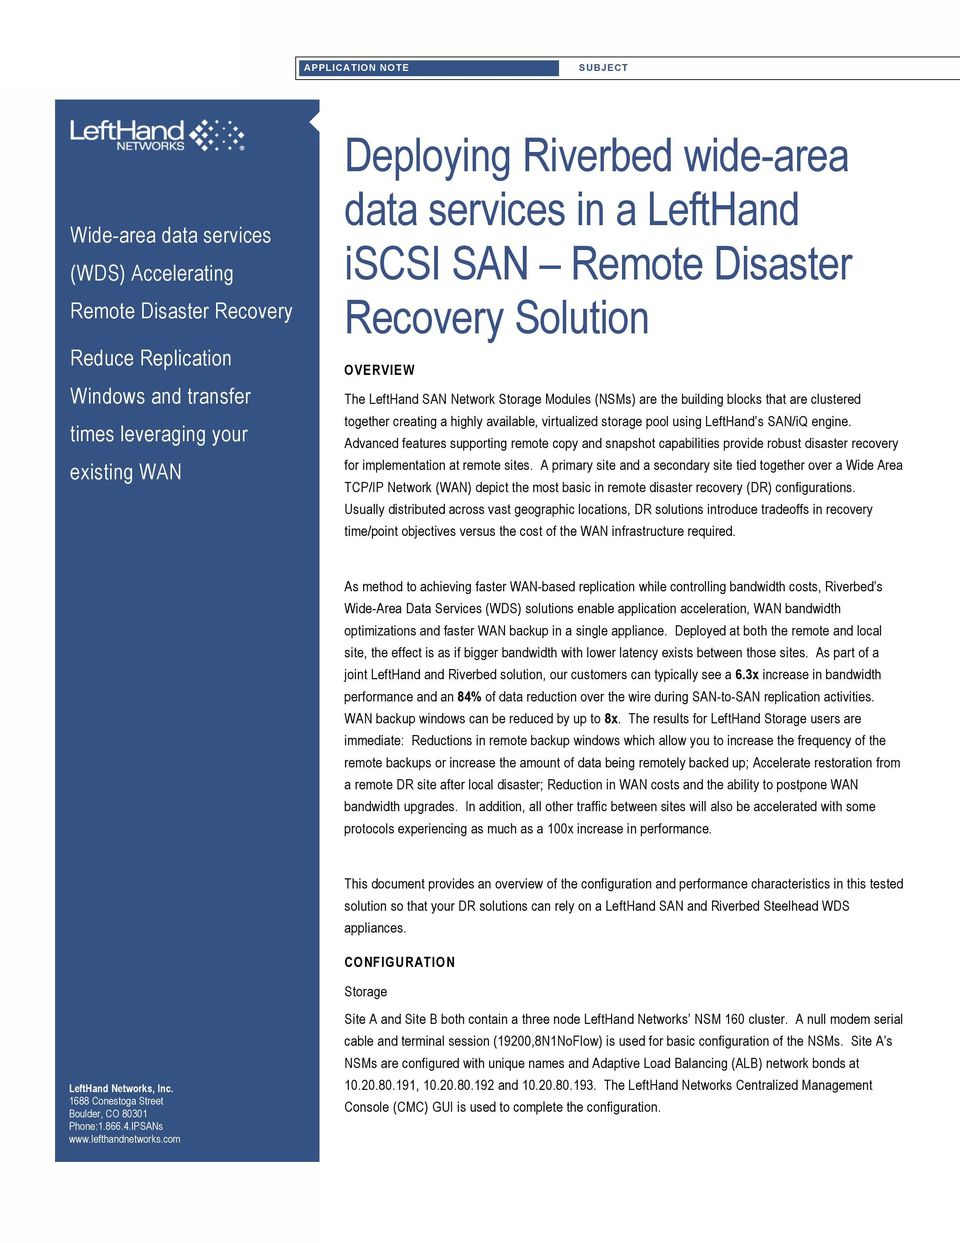 storage pool using LeftHand s SAN/iQ engine. Advanced features supporting remote copy and snapshot capabilities provide robust disaster recovery for implementation at remote sites.